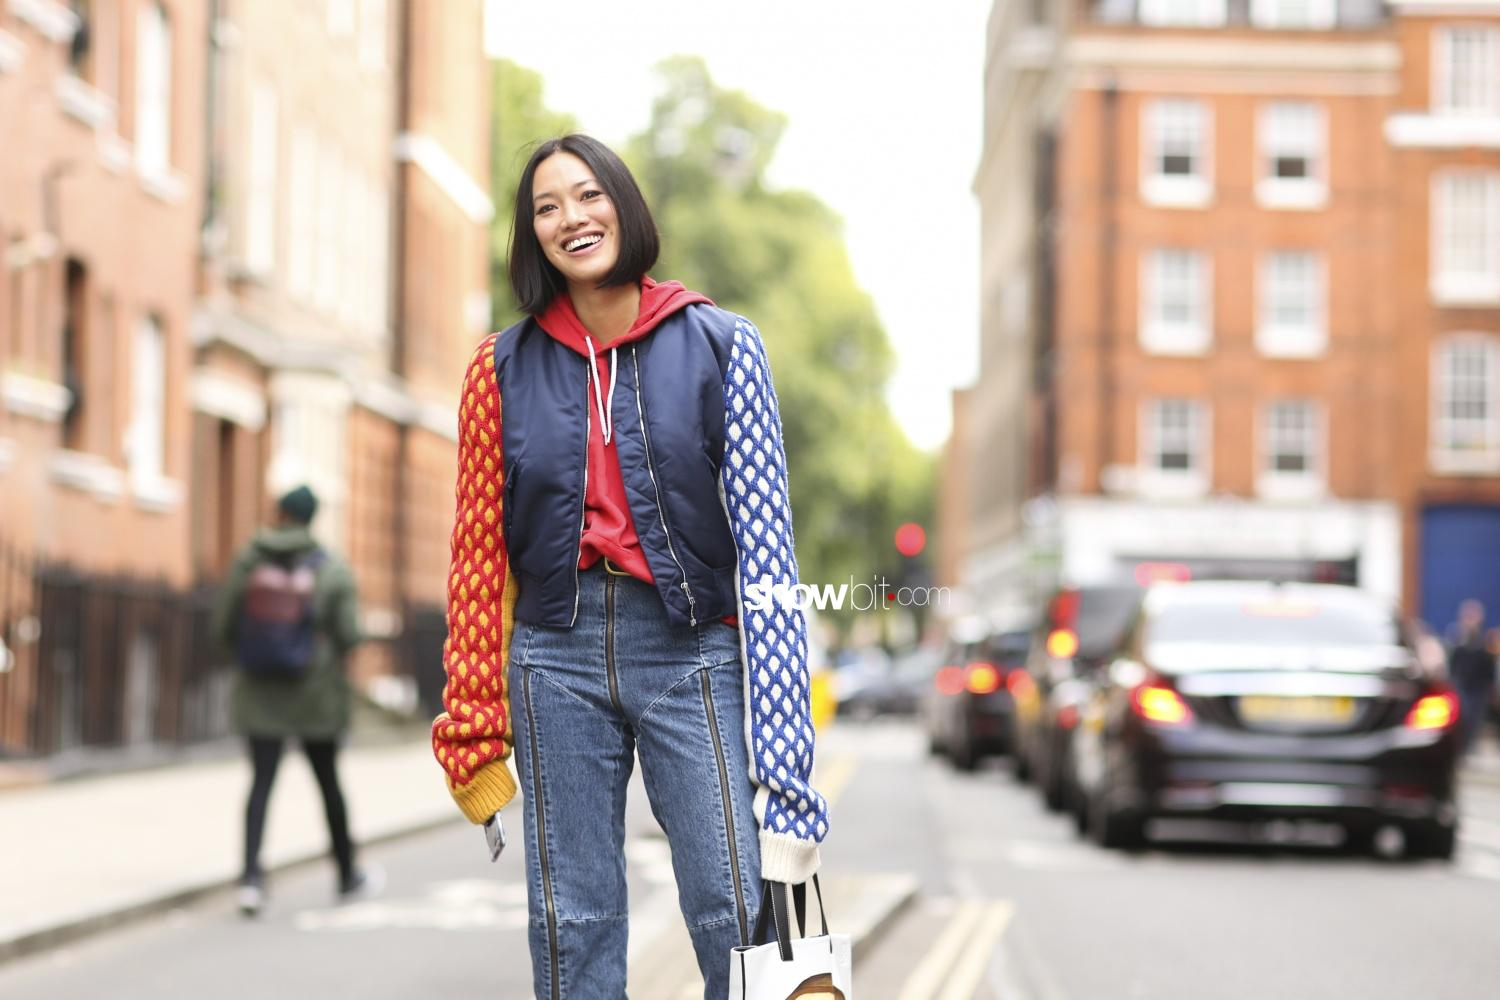 London Fashion Street Style